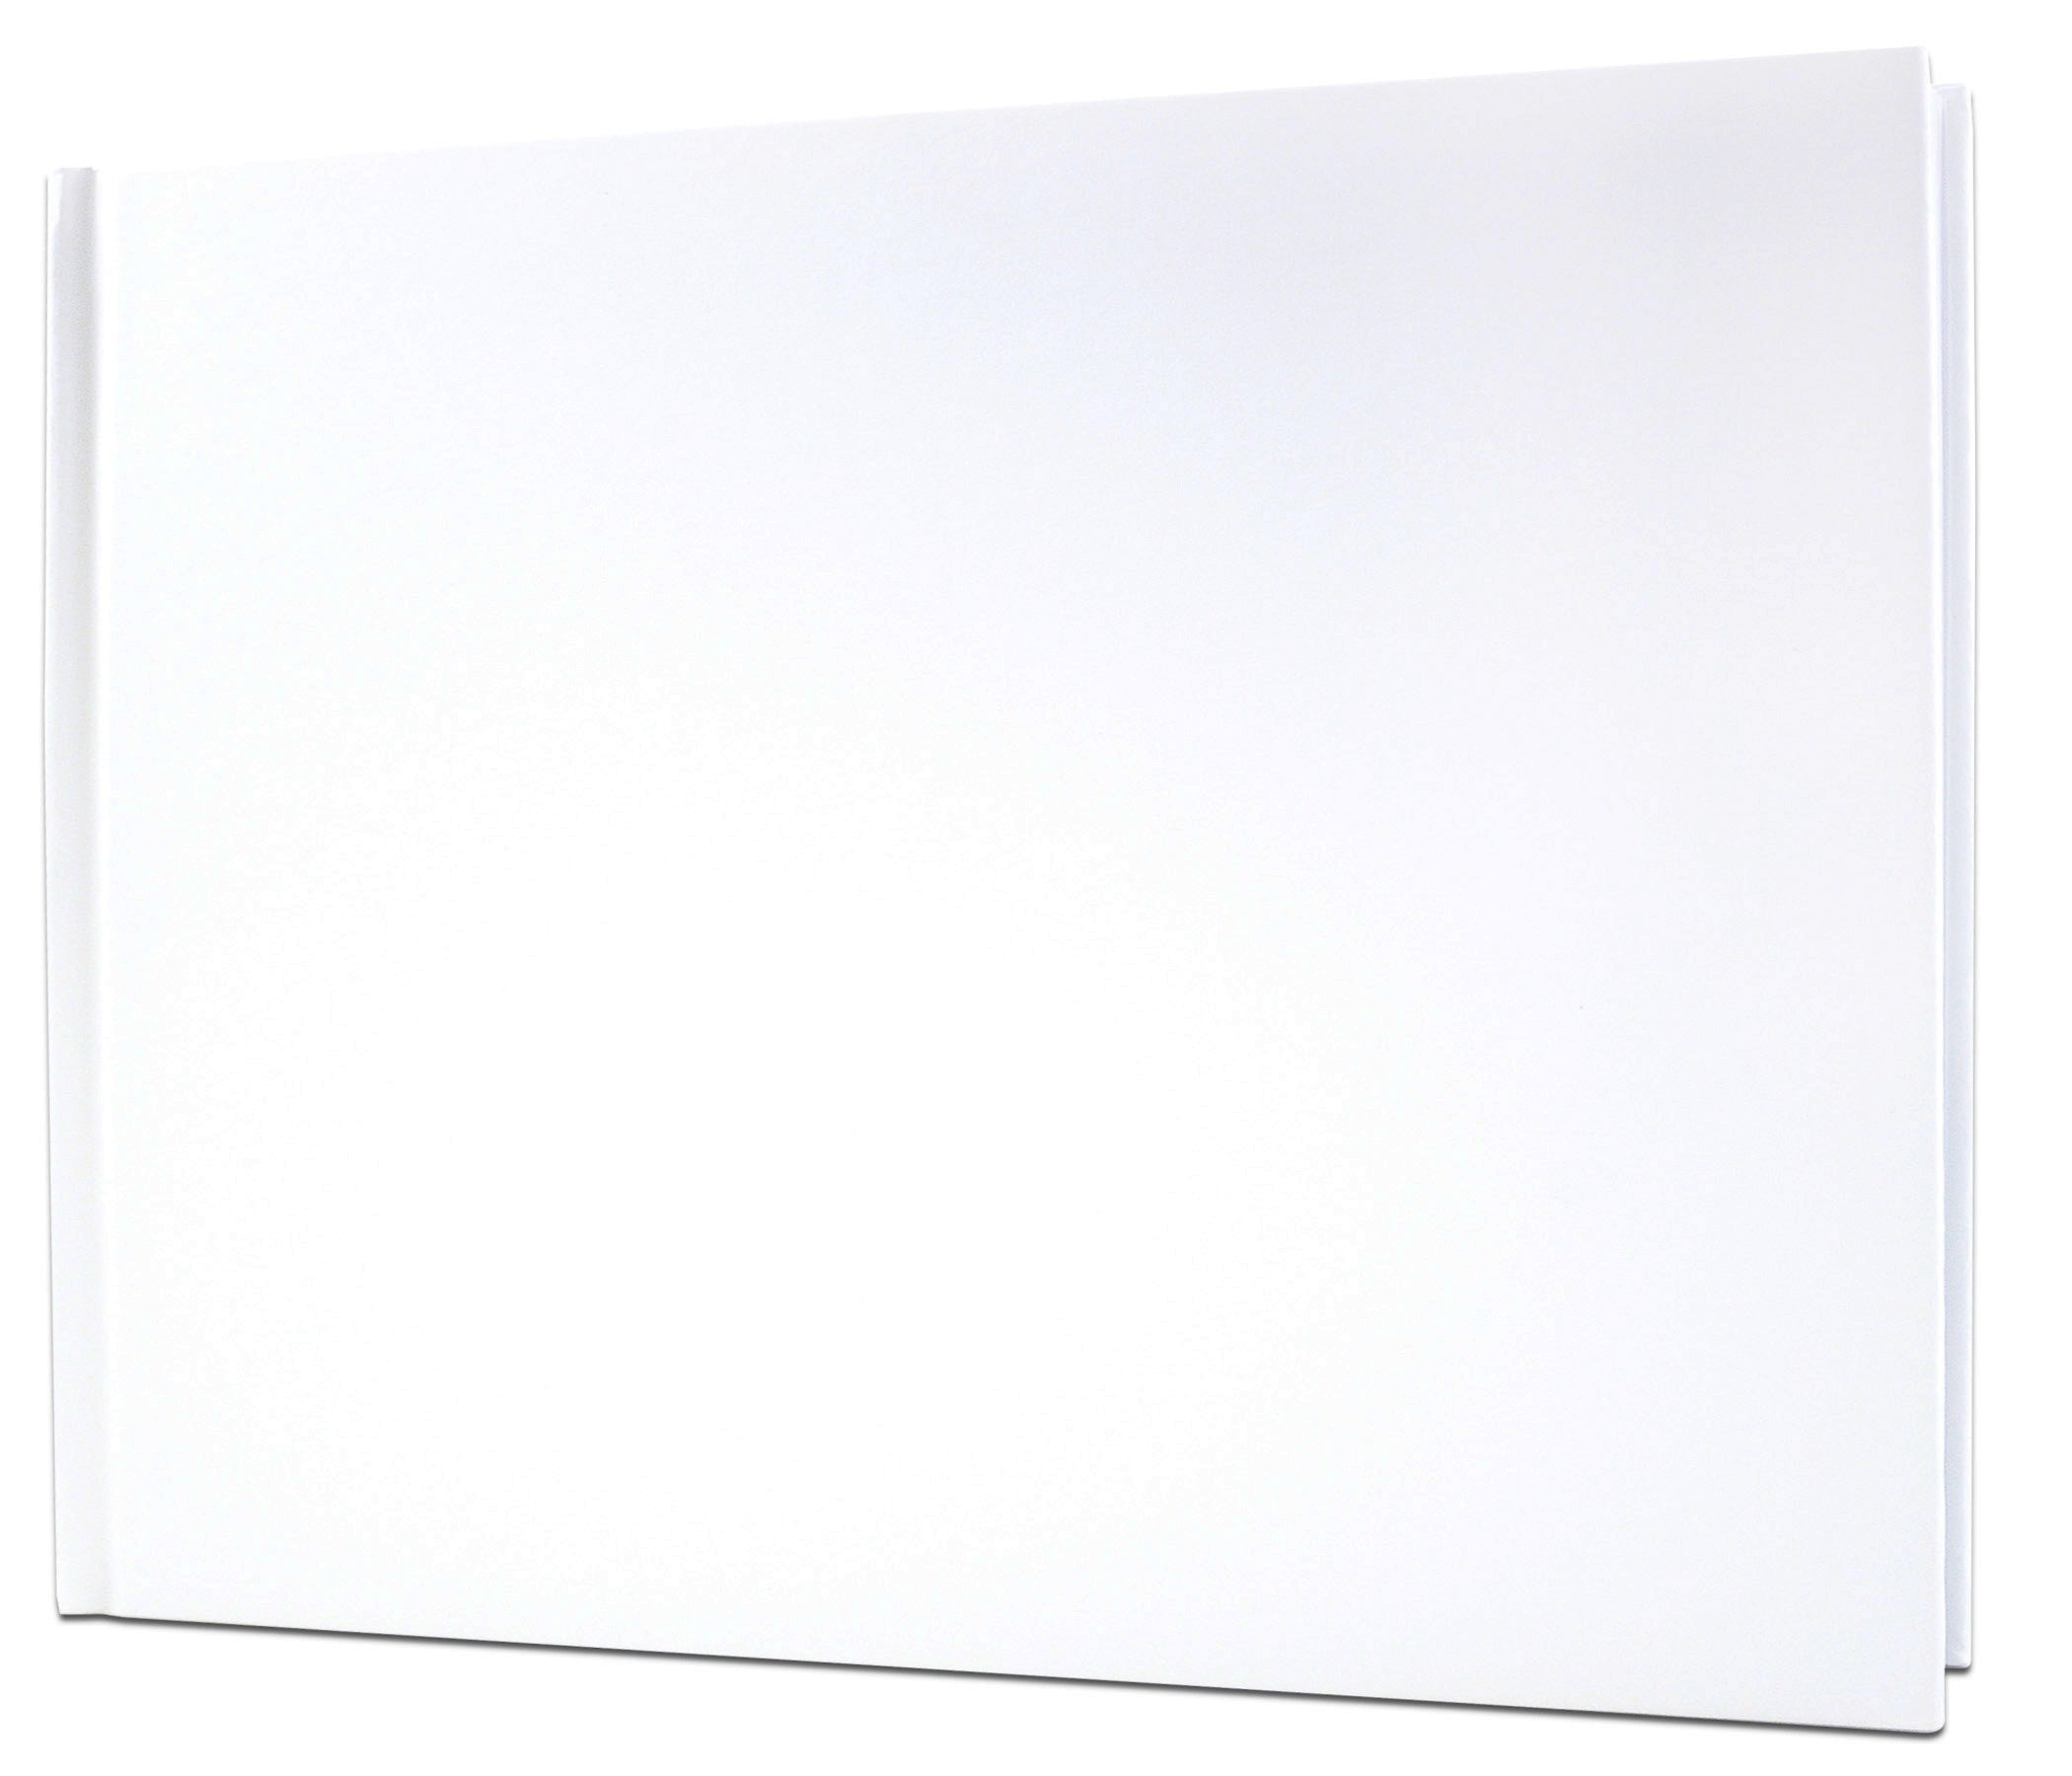 Flipside Products BK424 Hardcover Blank Books, CL PK 24,Grade: (Pack of 24) by Flipside Products